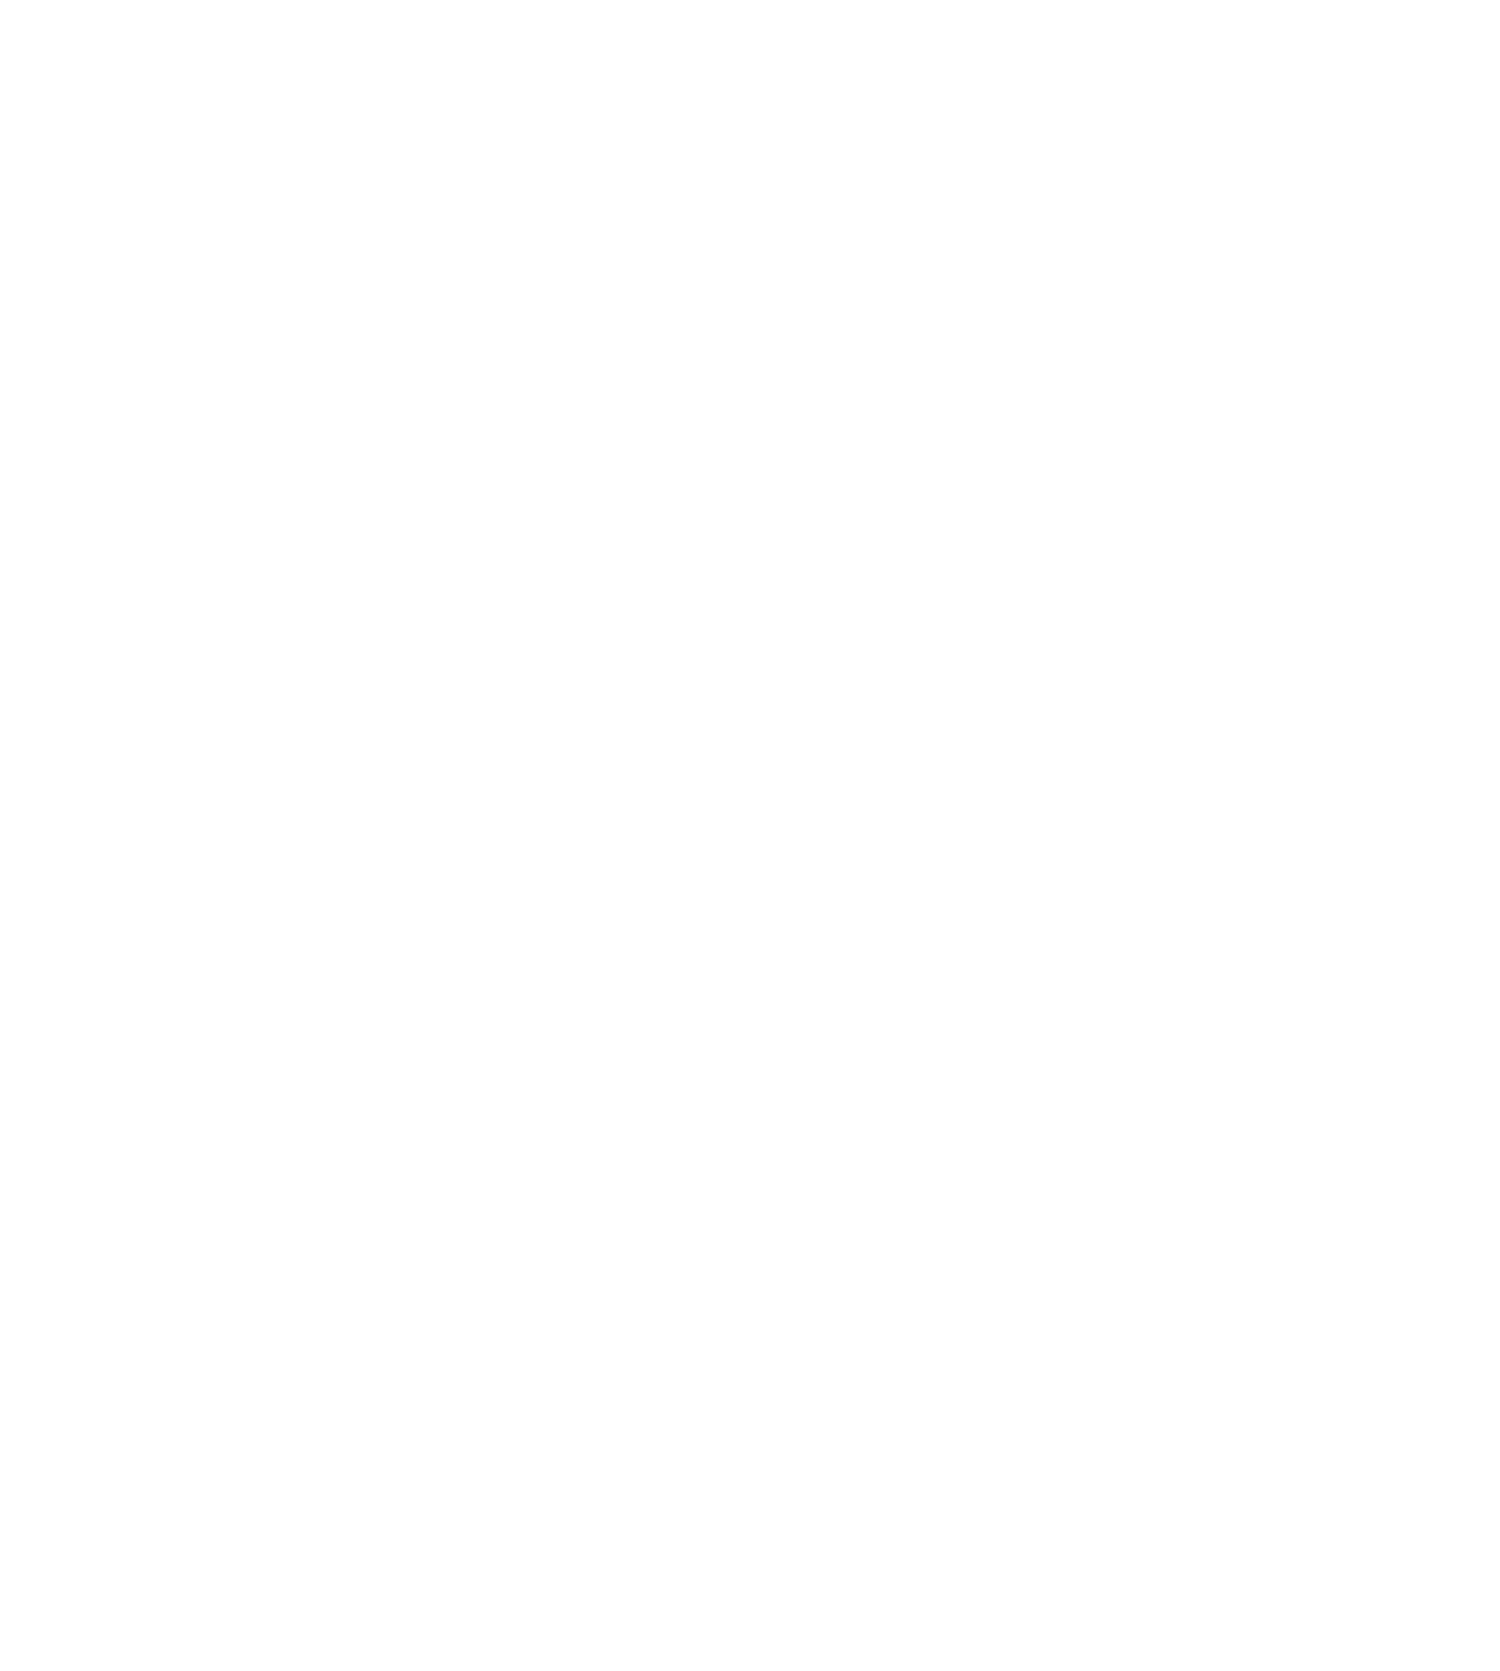 Real Good - Meet good people in LA